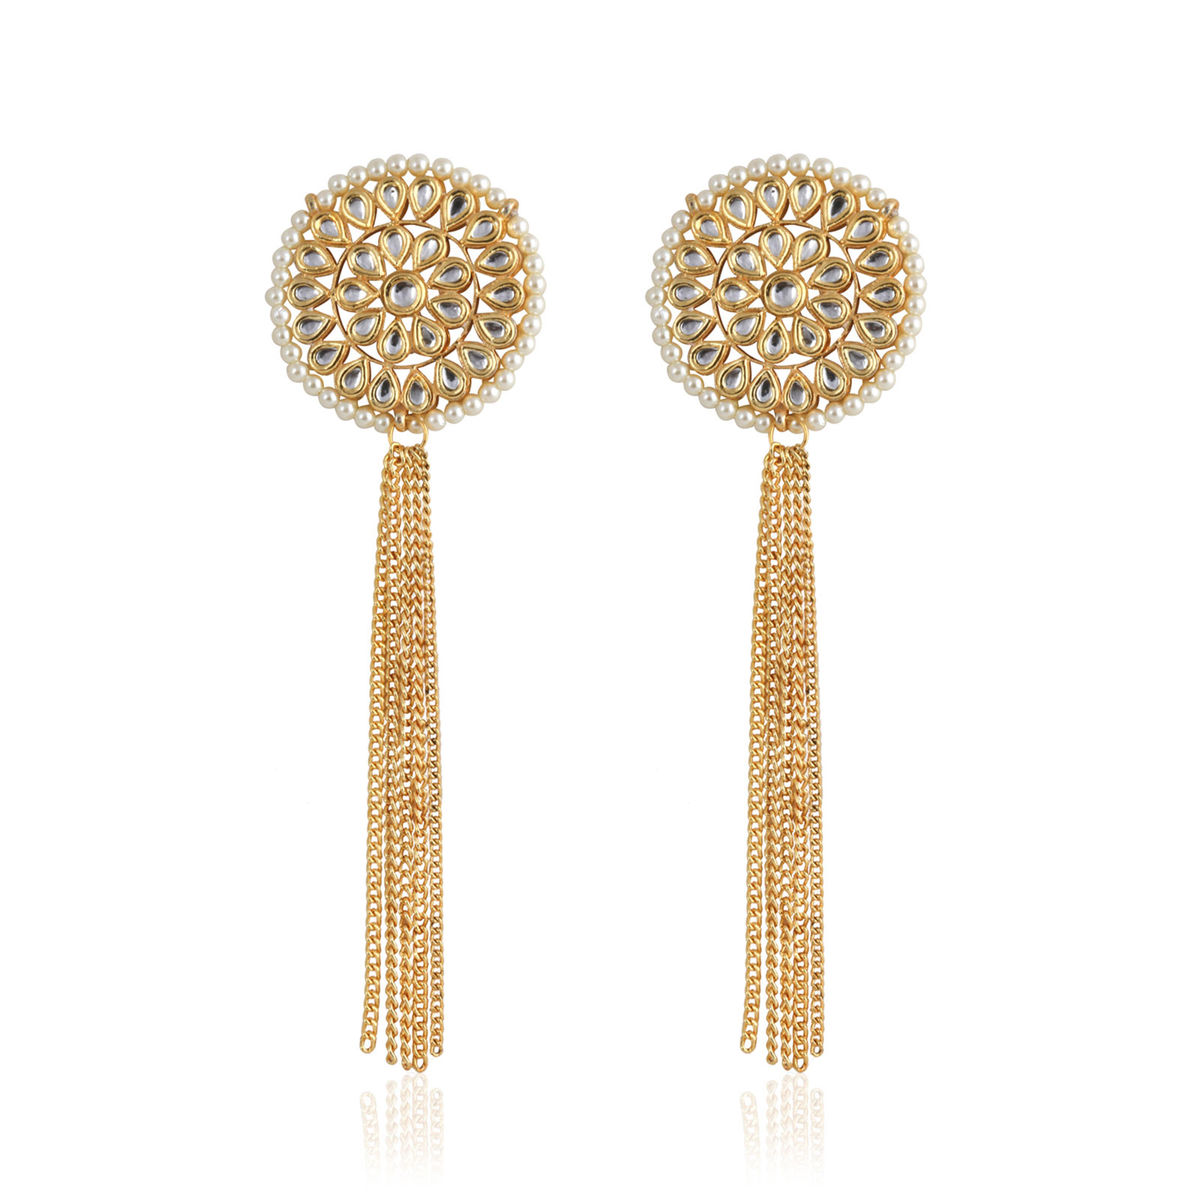 Kundan Stud Earrings With Hanging Gold Chains | Bvn081